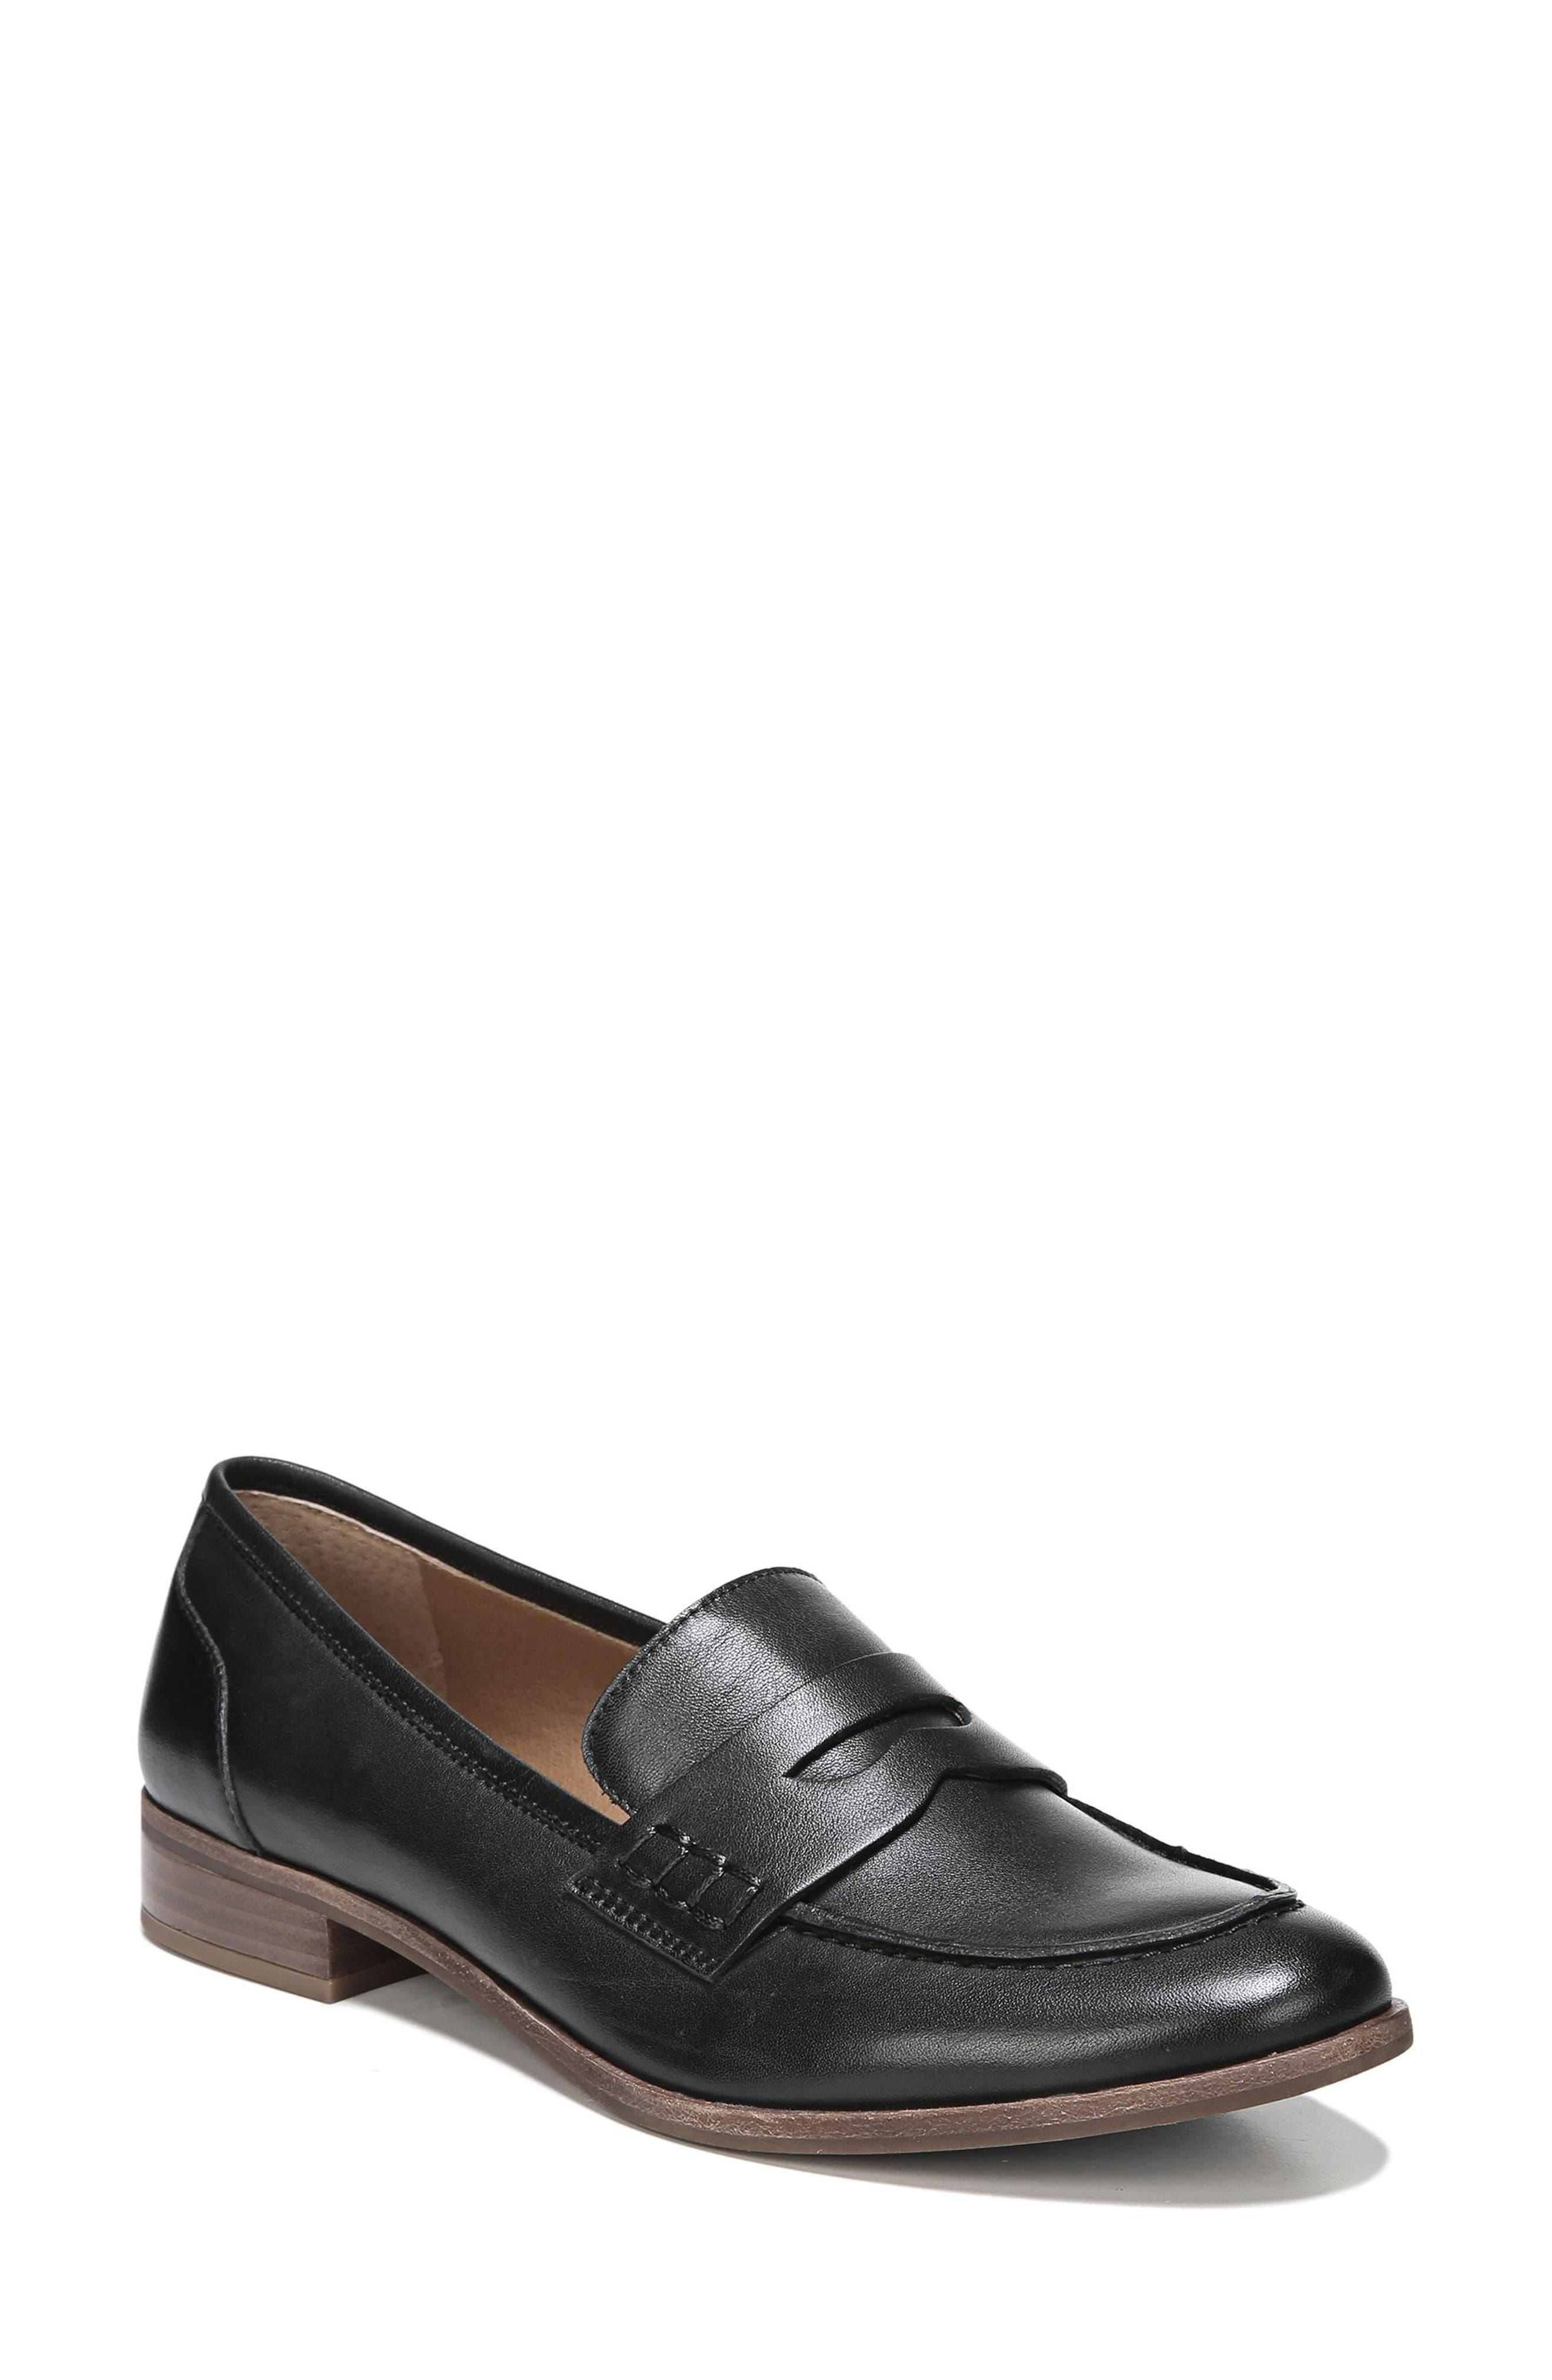 'Jolette' Penny Loafer,                             Main thumbnail 1, color,                             BLACK LEATHER